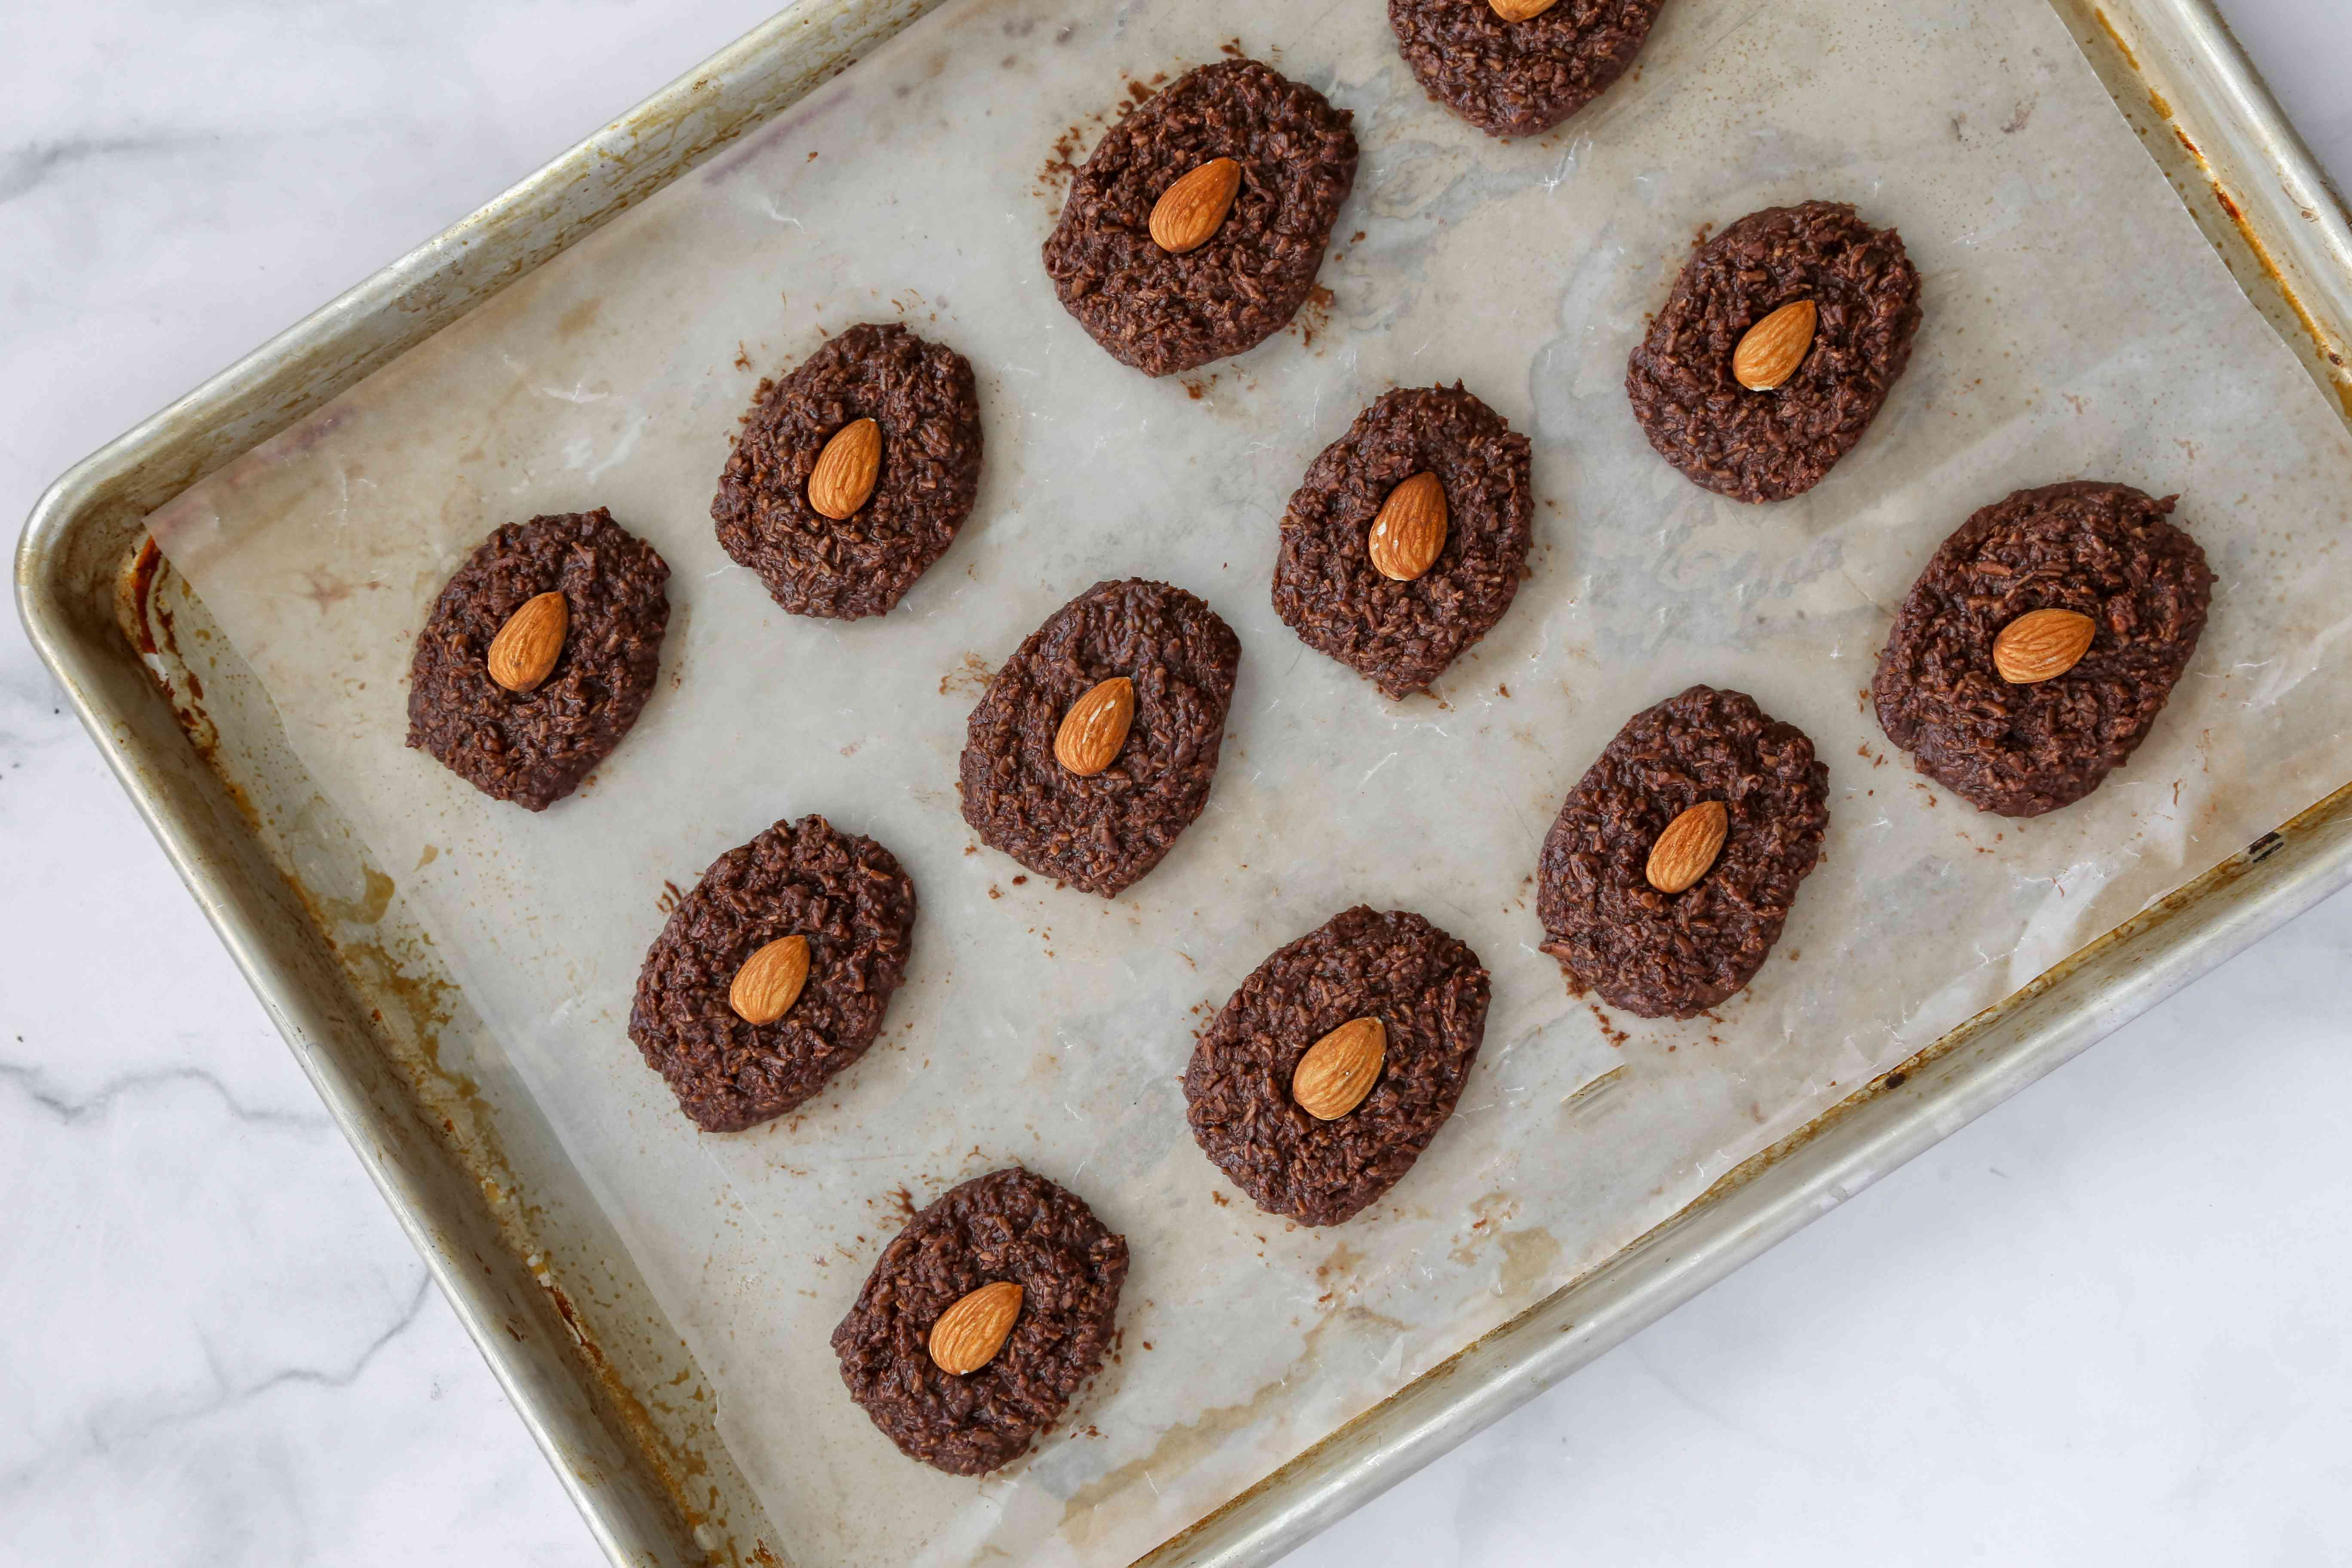 Chill the almond joy cookies on a baking sheet